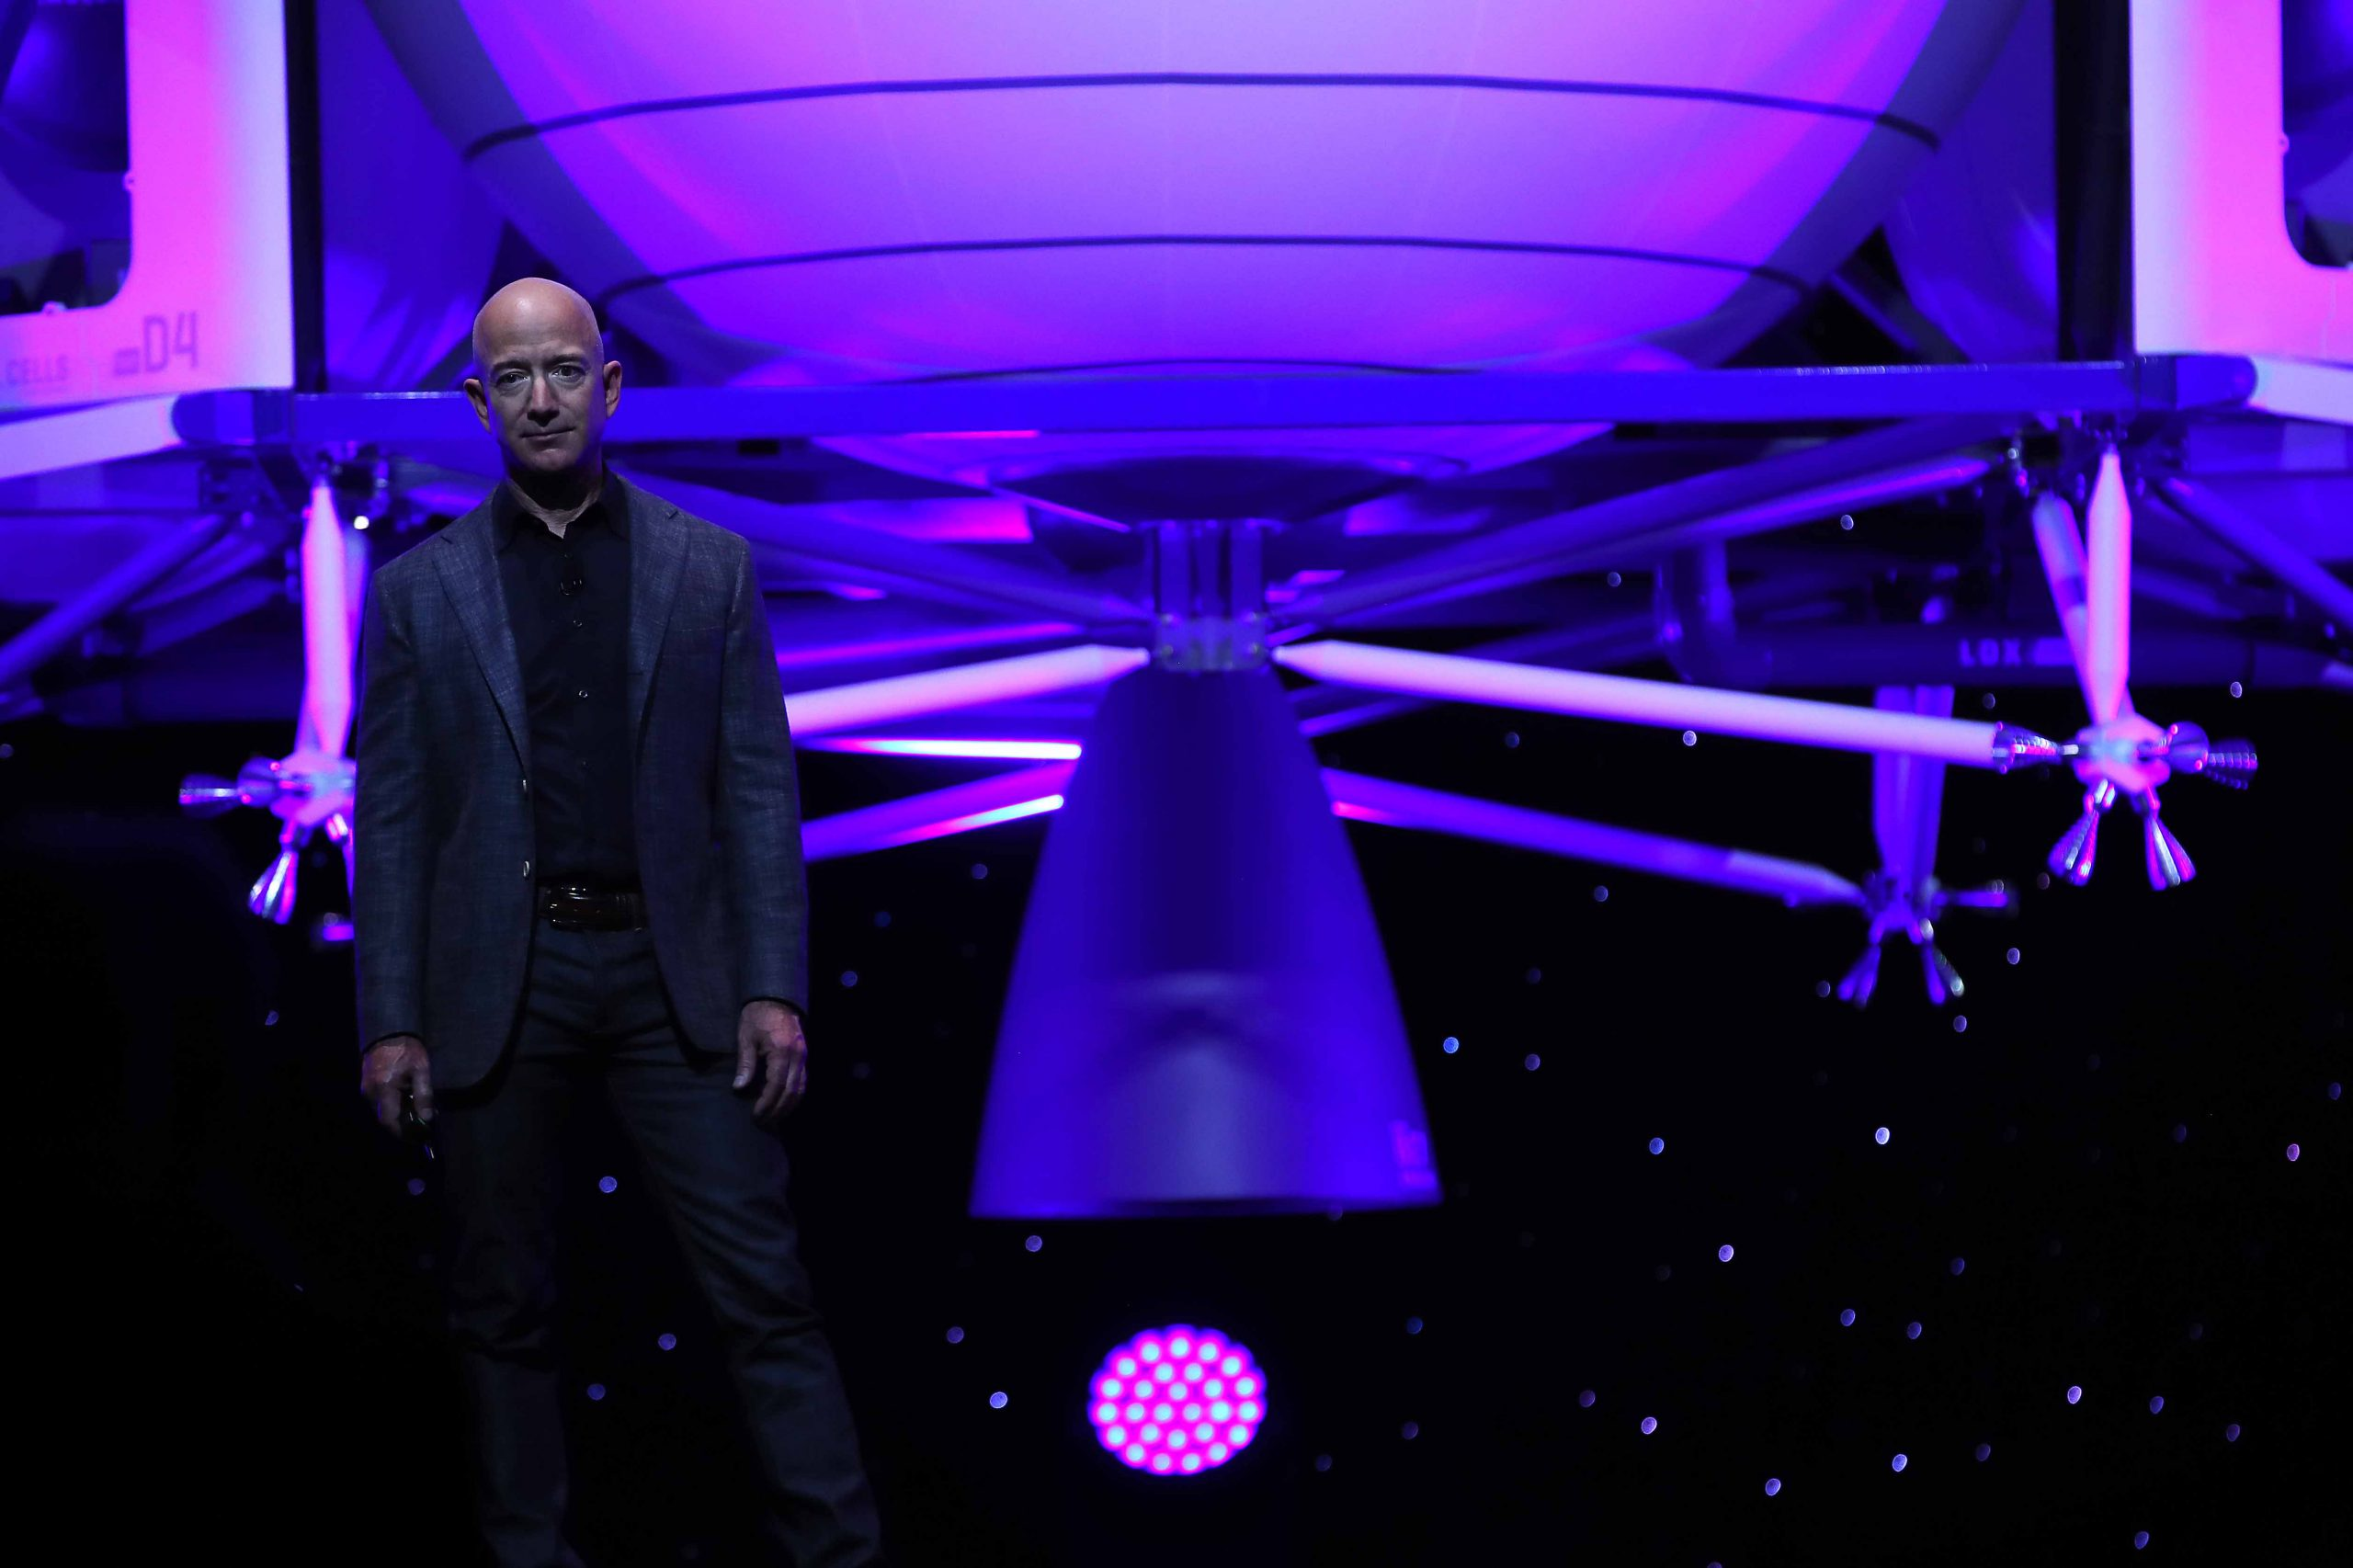 'A much grander human destiny': For Jeff Bezos, space travel is about more than tourism